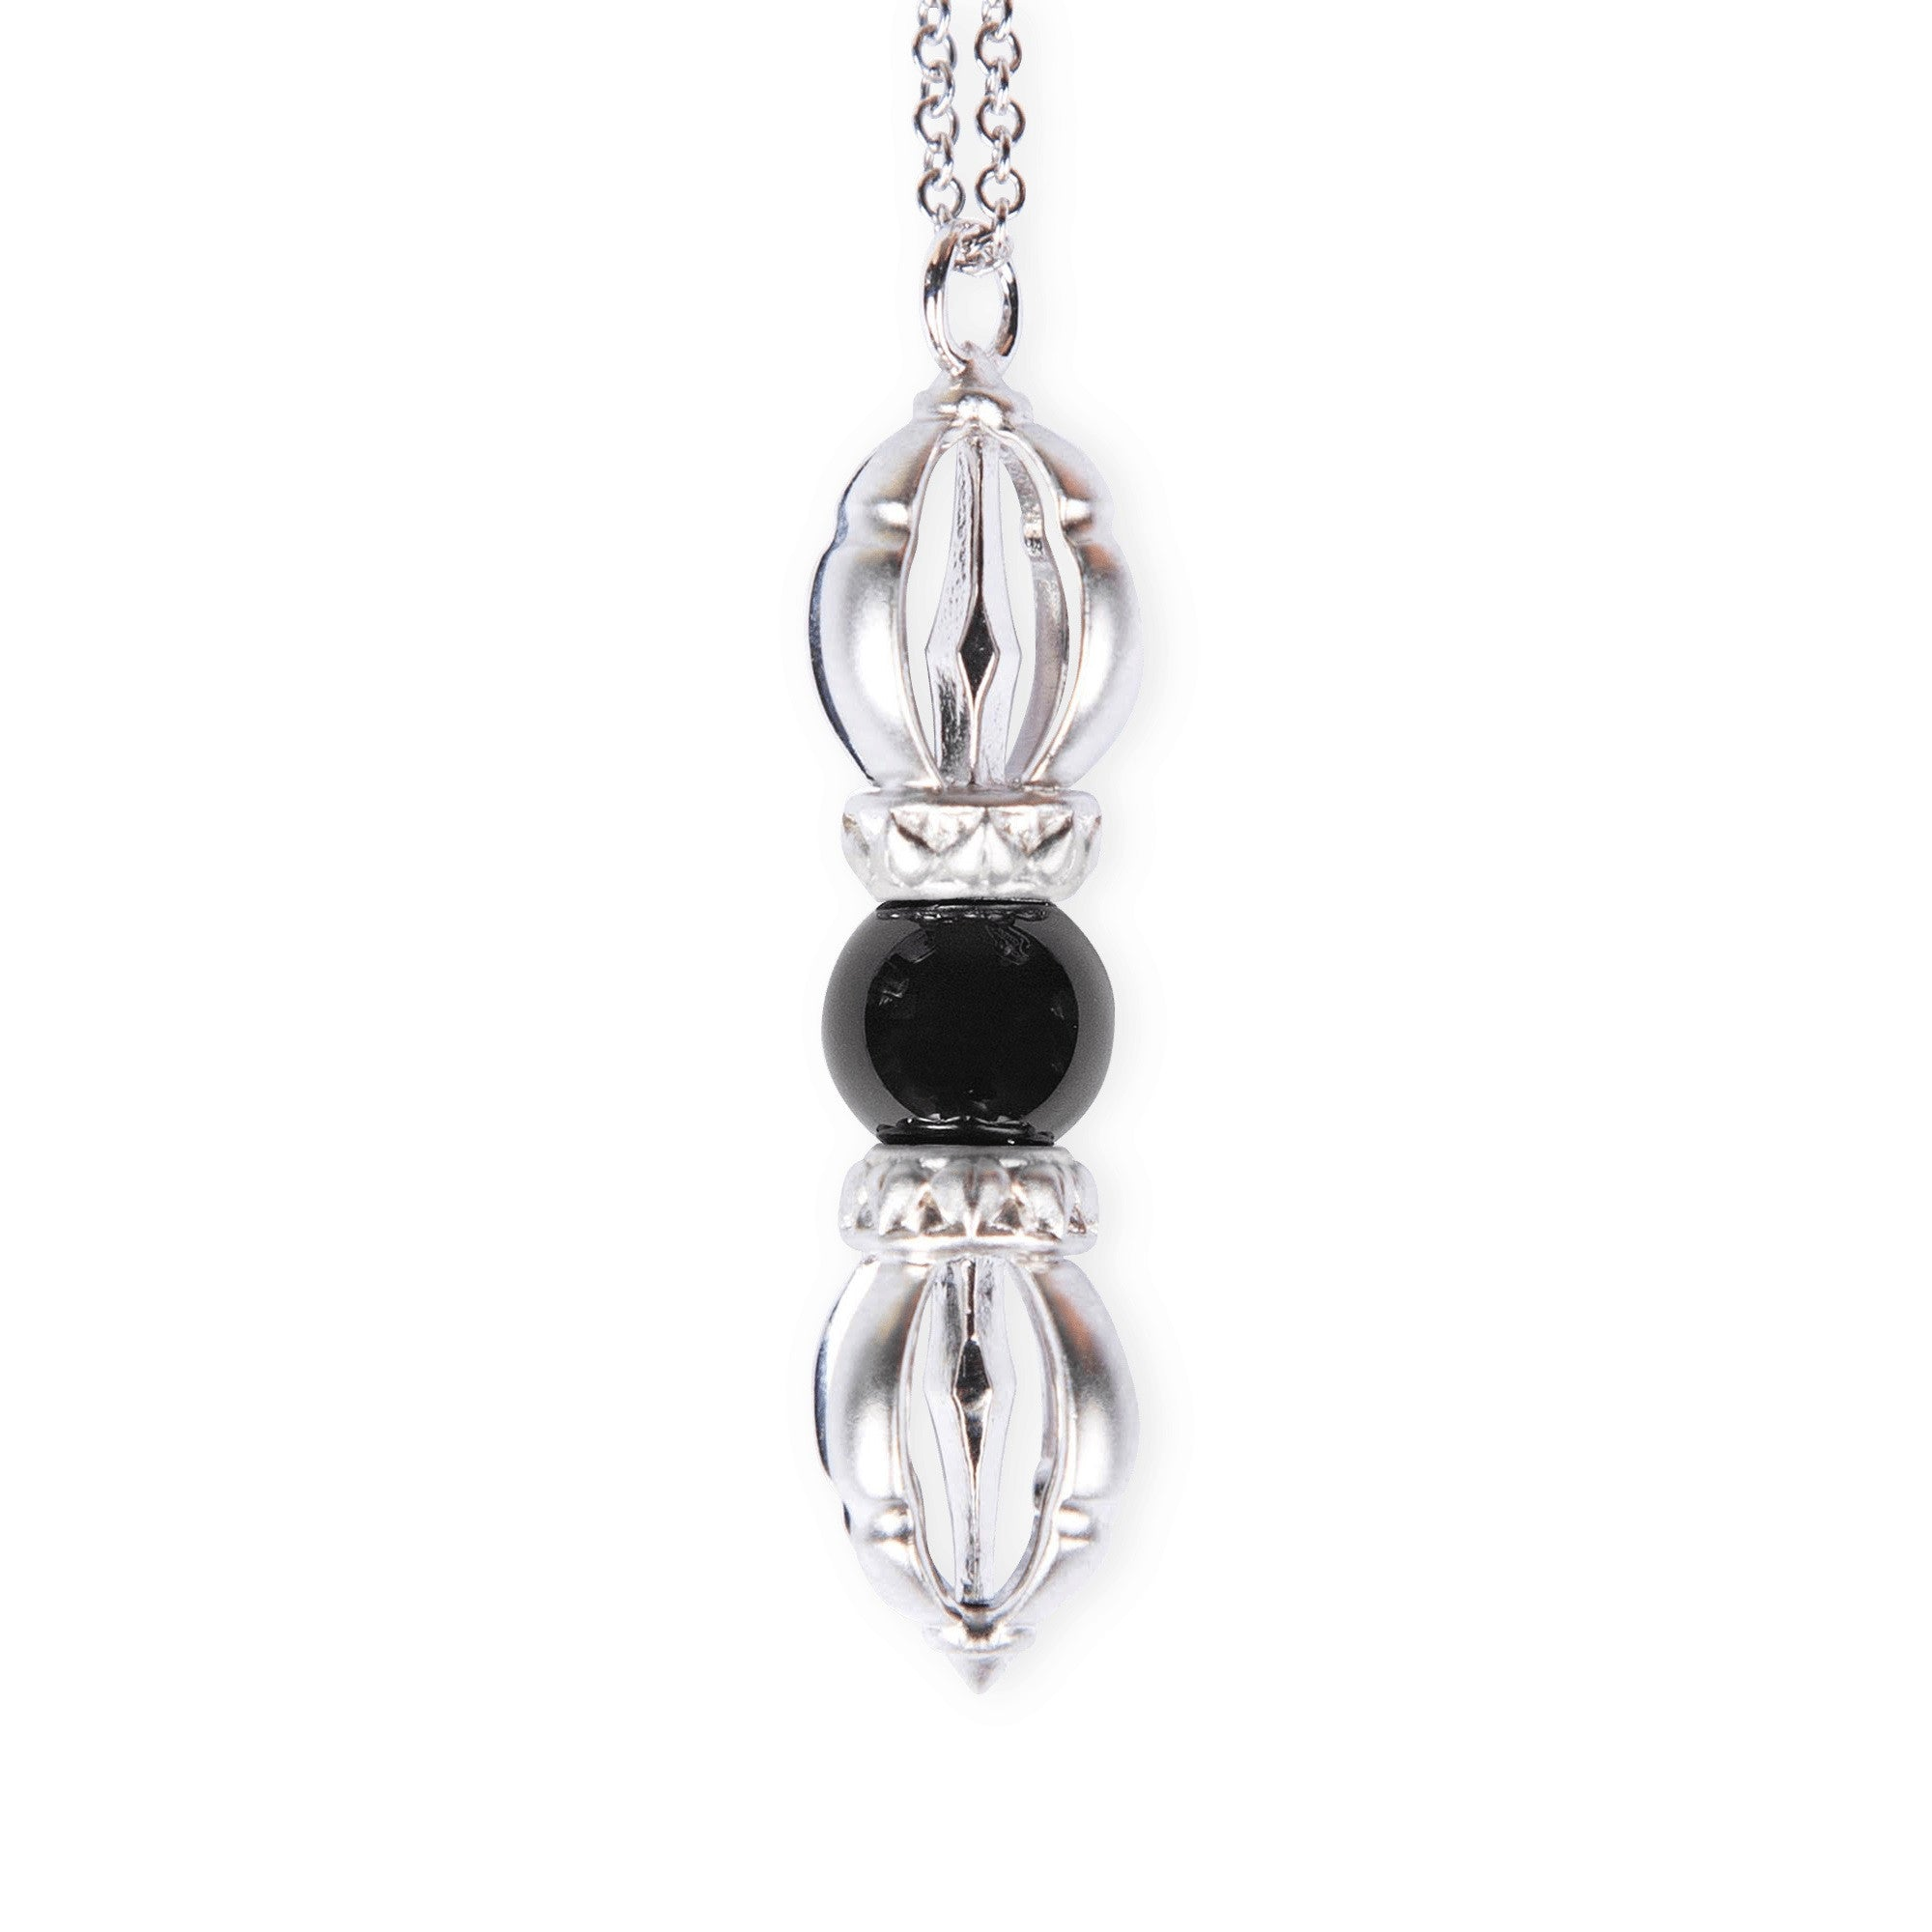 The Silatha Black Onyx in white gold for more strength, self-control, emotional stability and the ability to let go. Paired with a meditation course.